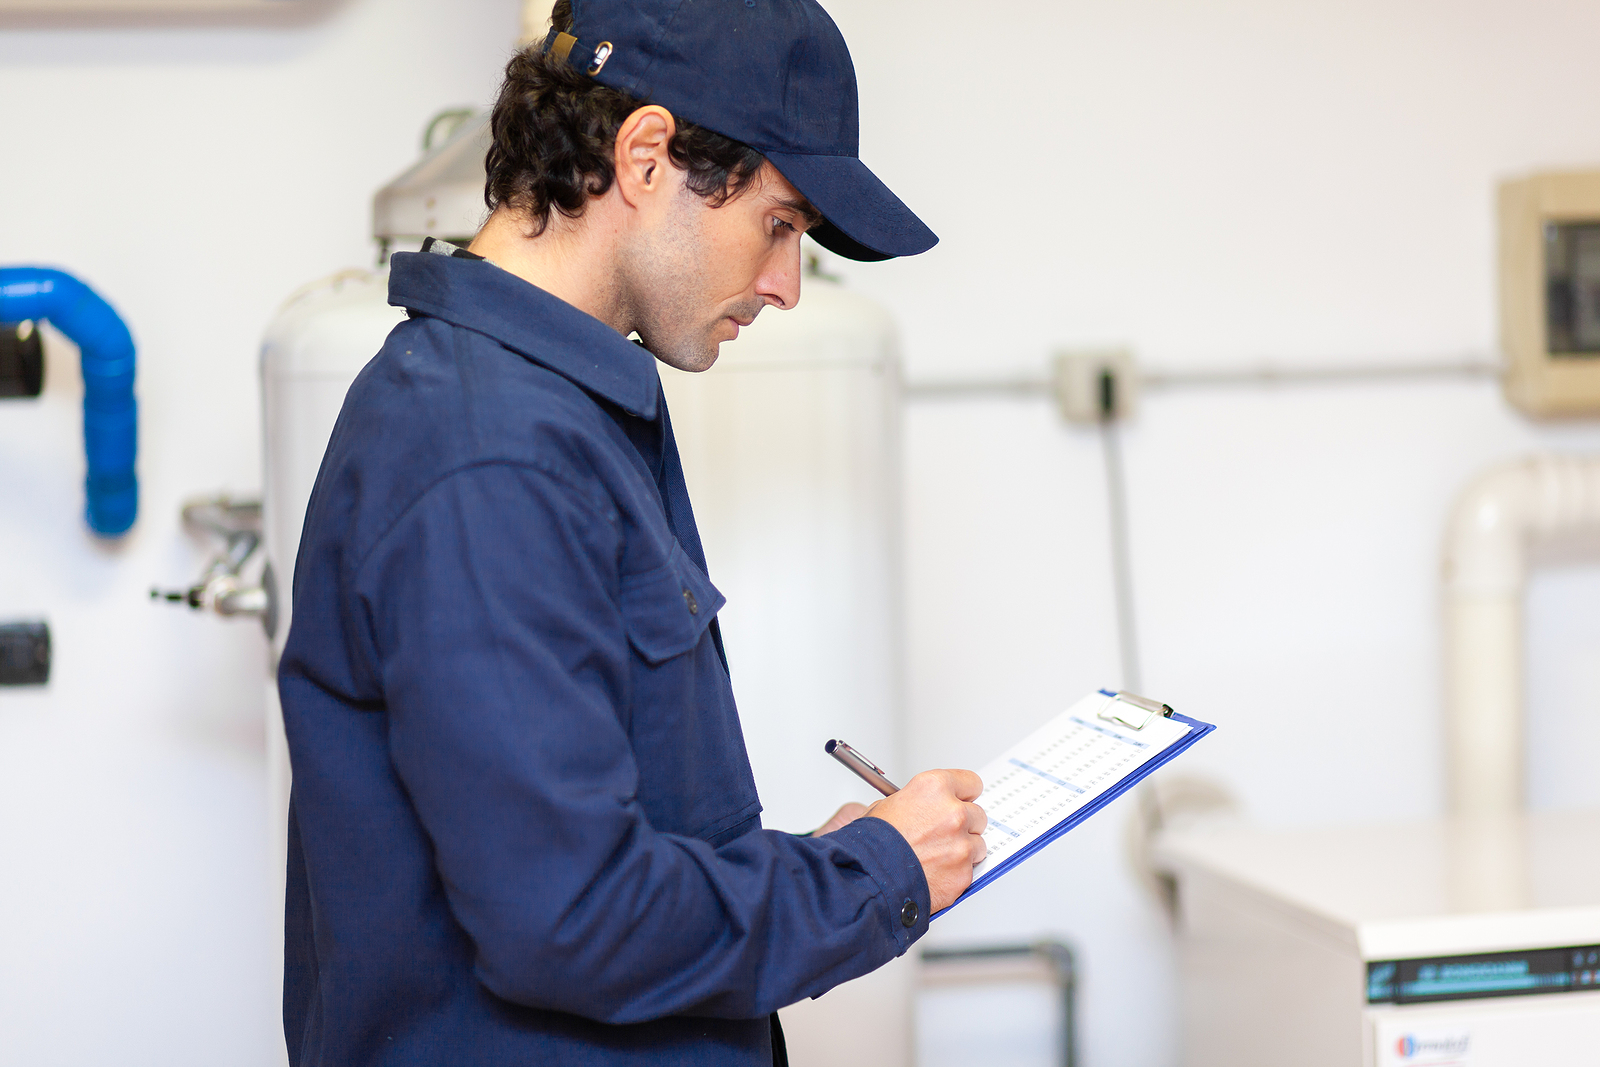 Technician servicing a gas hot water system installation